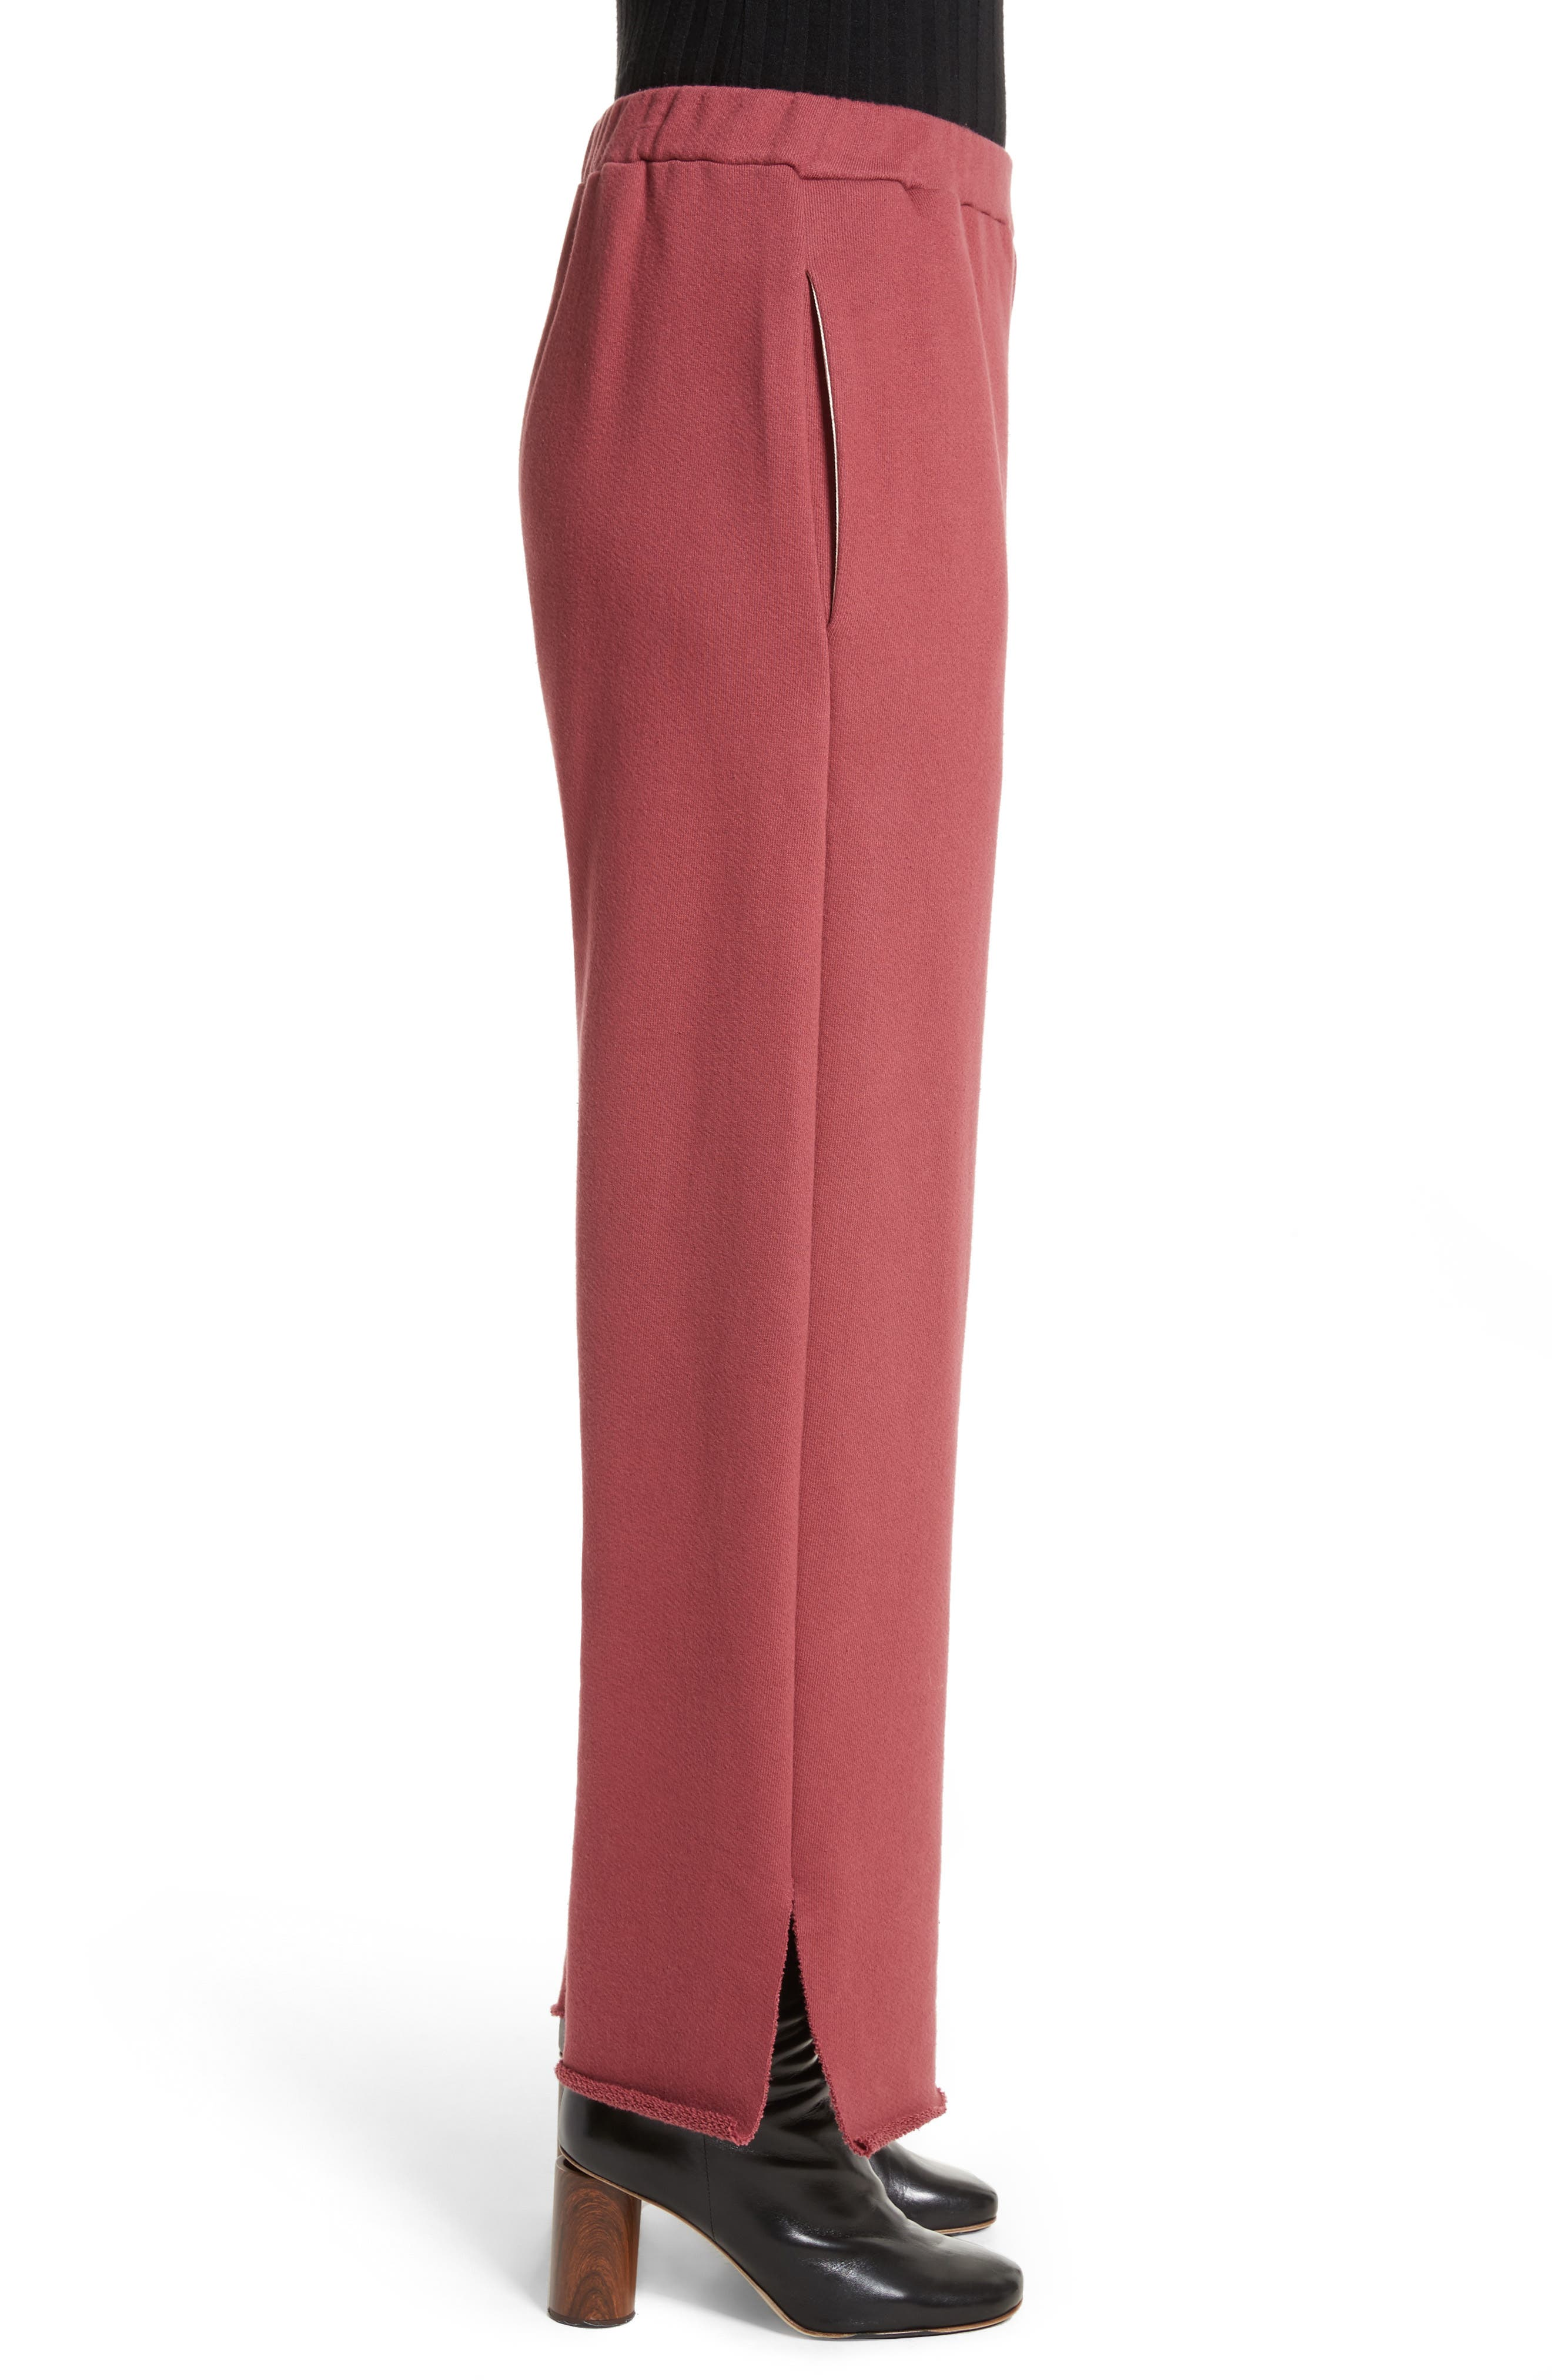 Canal French Terry Sweatpants,                             Alternate thumbnail 3, color,                             650